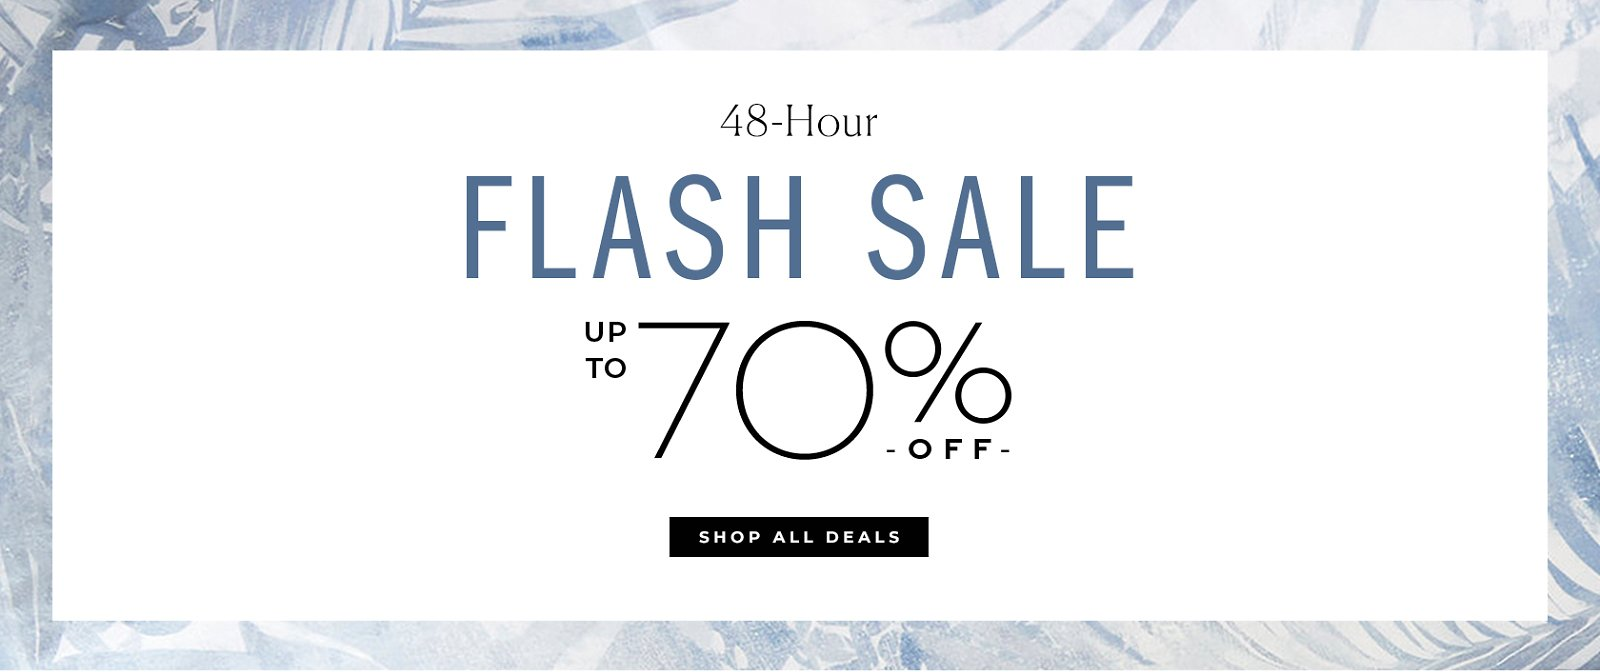 FLASH SALE | UP TO 70% OFF| Furniture & Home Decor On Sale | Pottery Barn